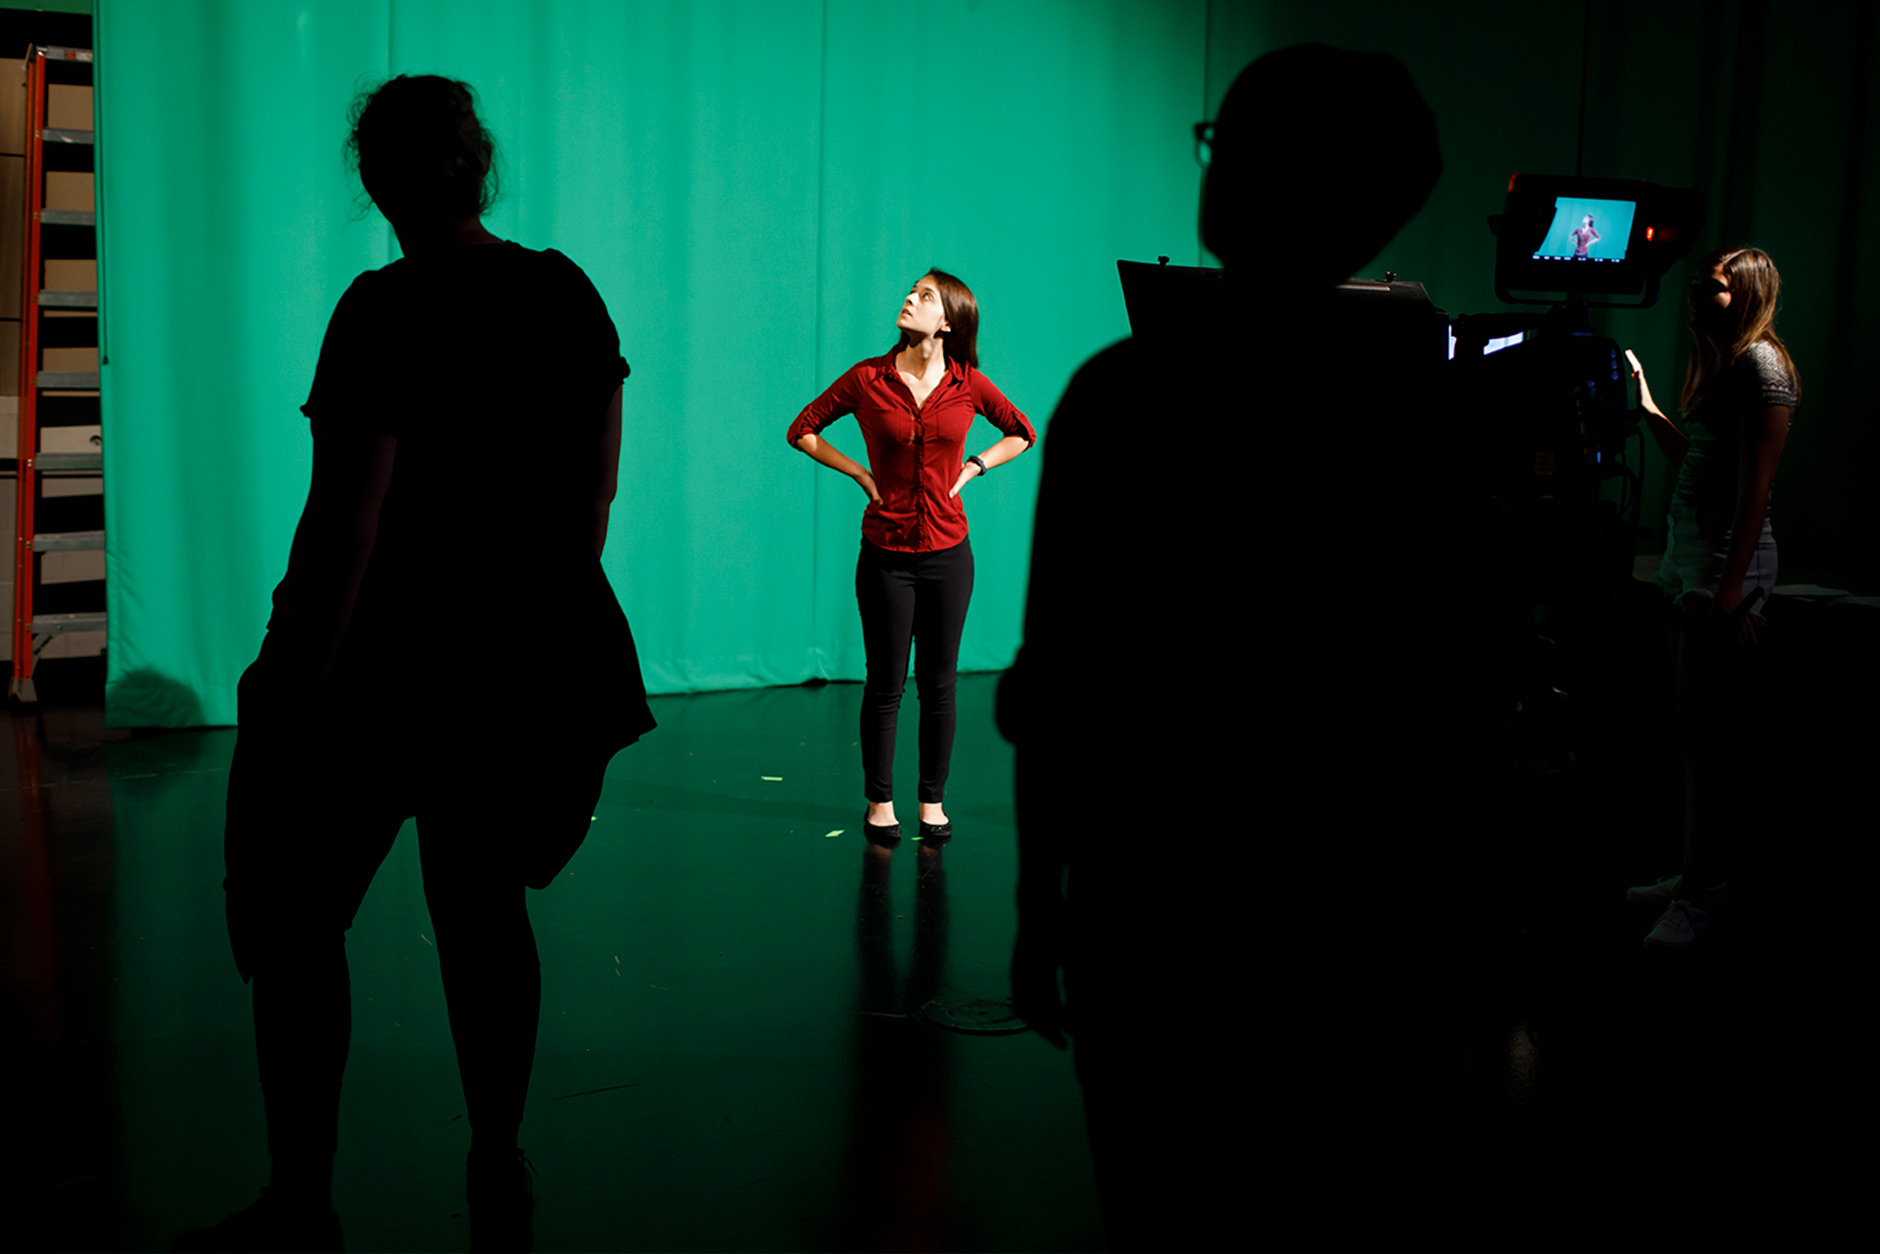 TV Studio Production class at the The Media School at Indiana University in the Radio and TV Building on Monday, Oct. 1, 2018.